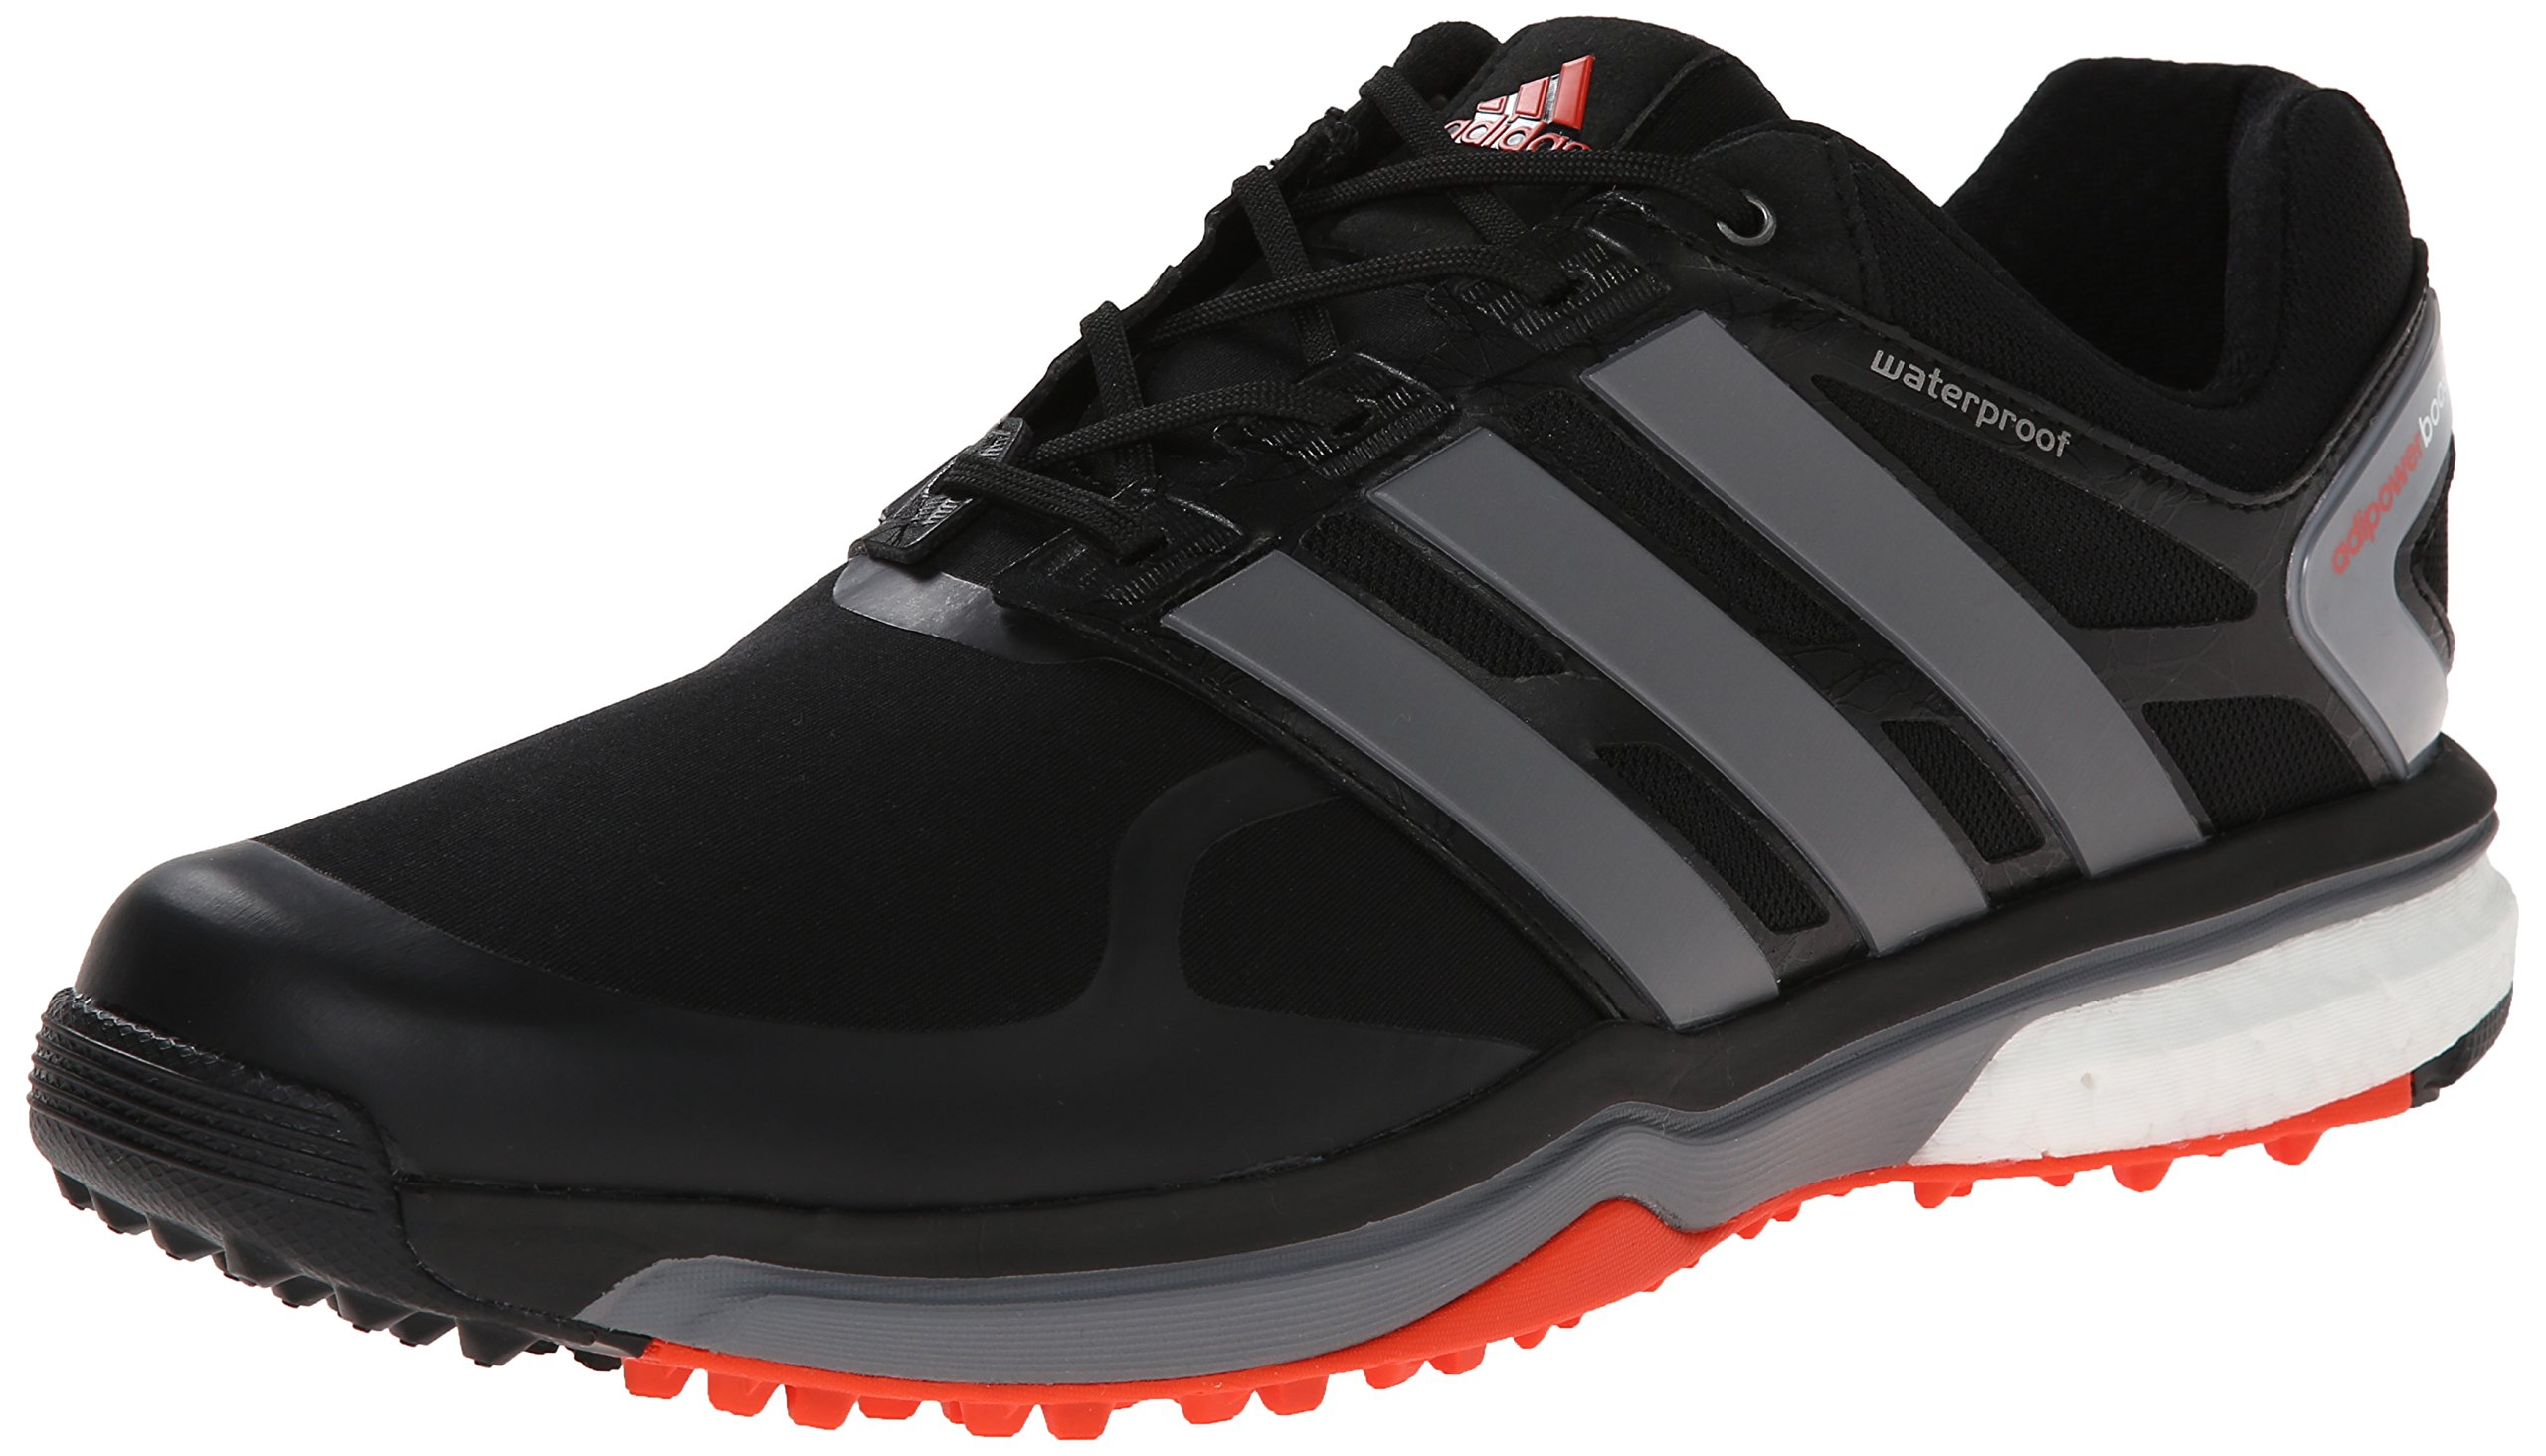 premium selection 48bc1 d6d97 Get Quotations · adidas Mens Adipower s Boost Golf Shoe